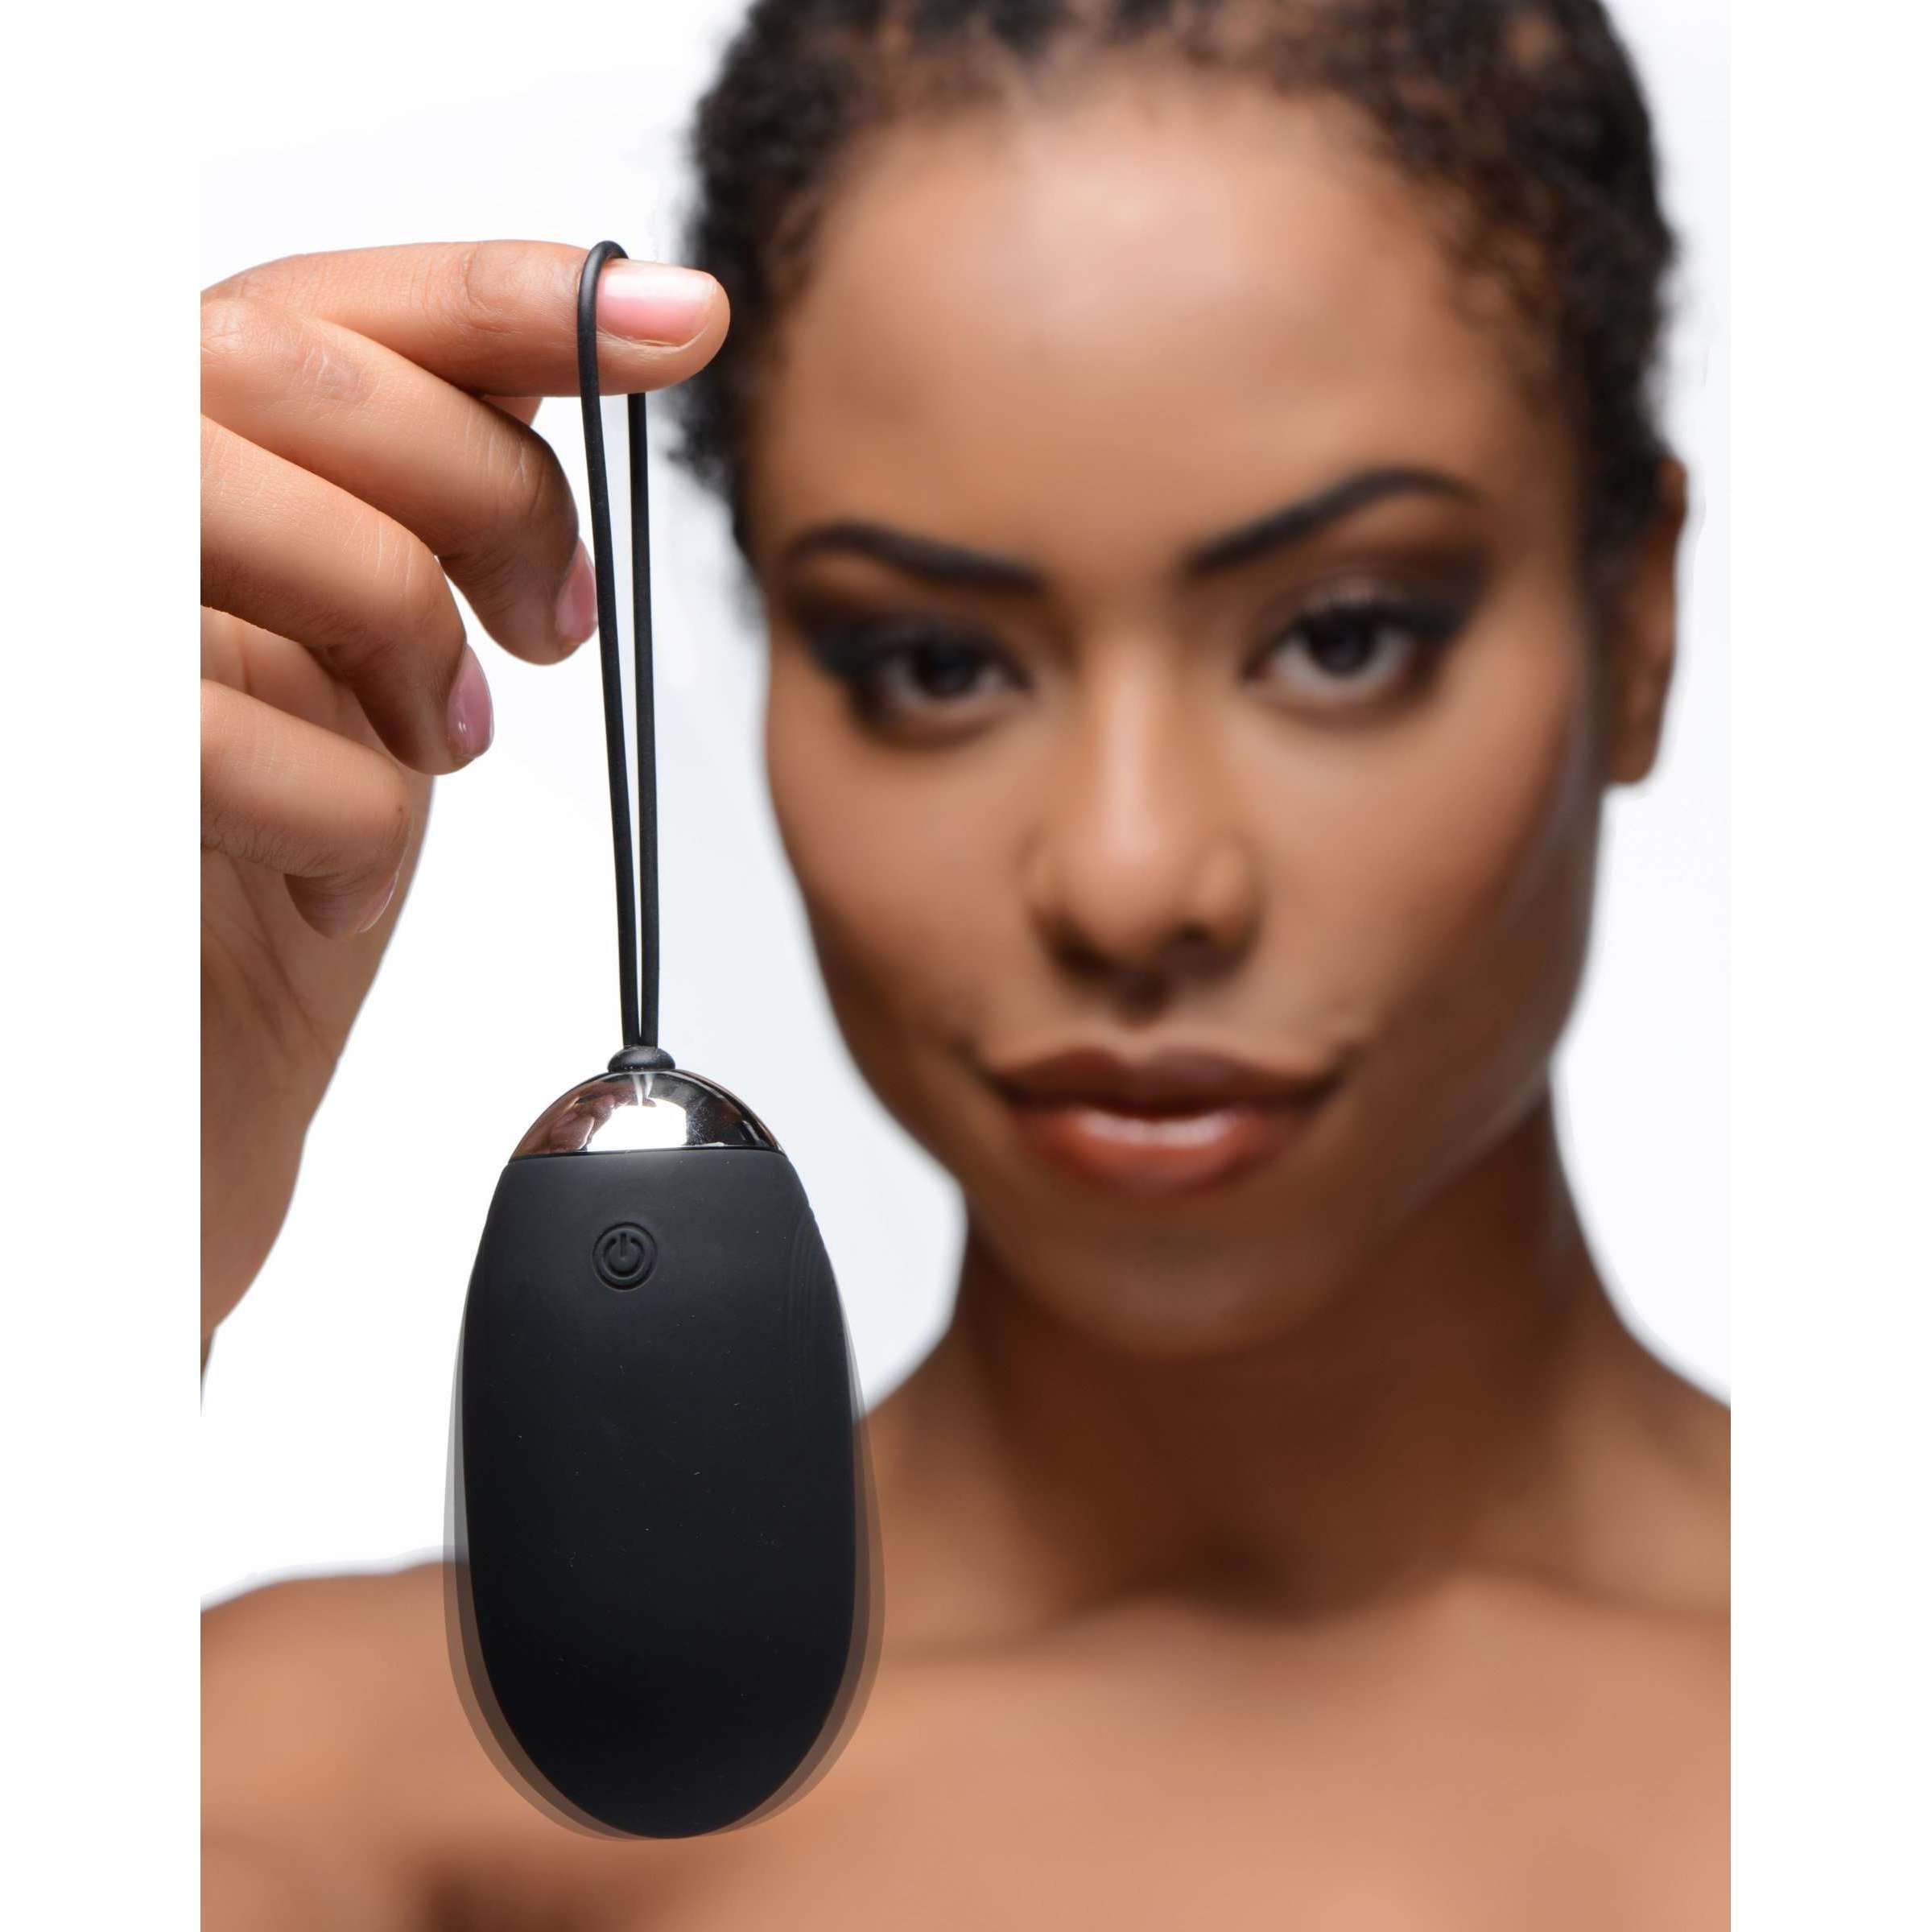 Thunder Egg 21X Silicone Vibrator with Remote Control